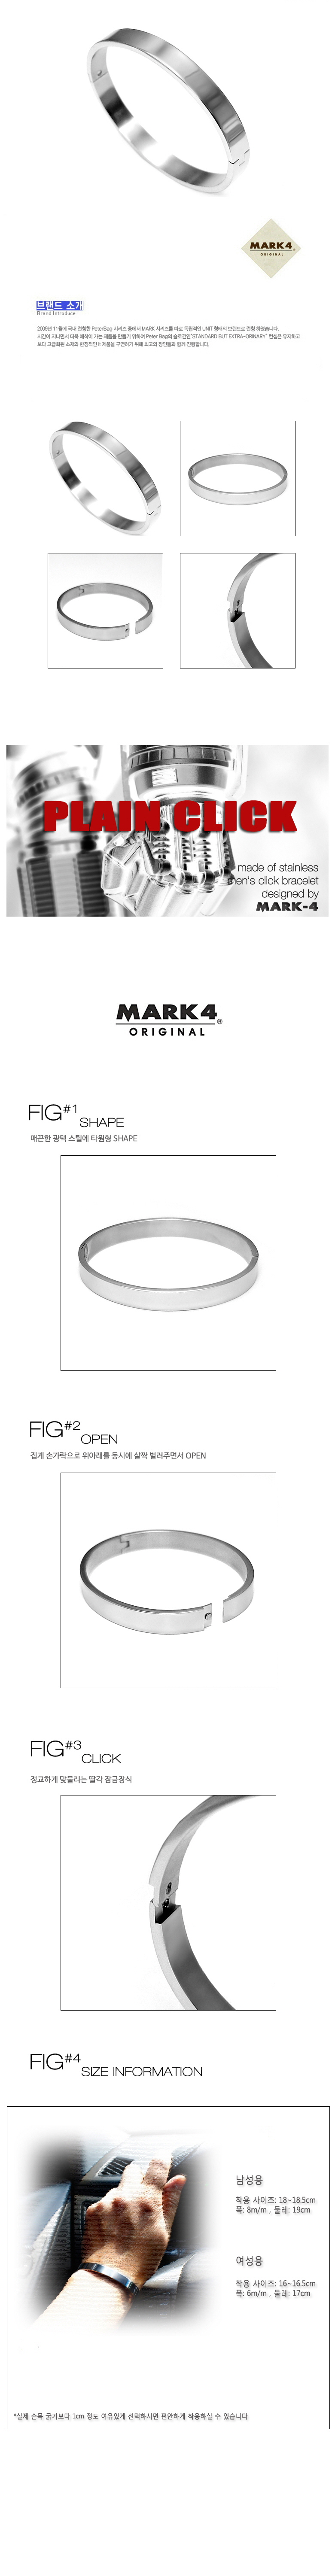 마크-4(MARK-4) [MARK-4] PLAIN CLICK (SILVER)